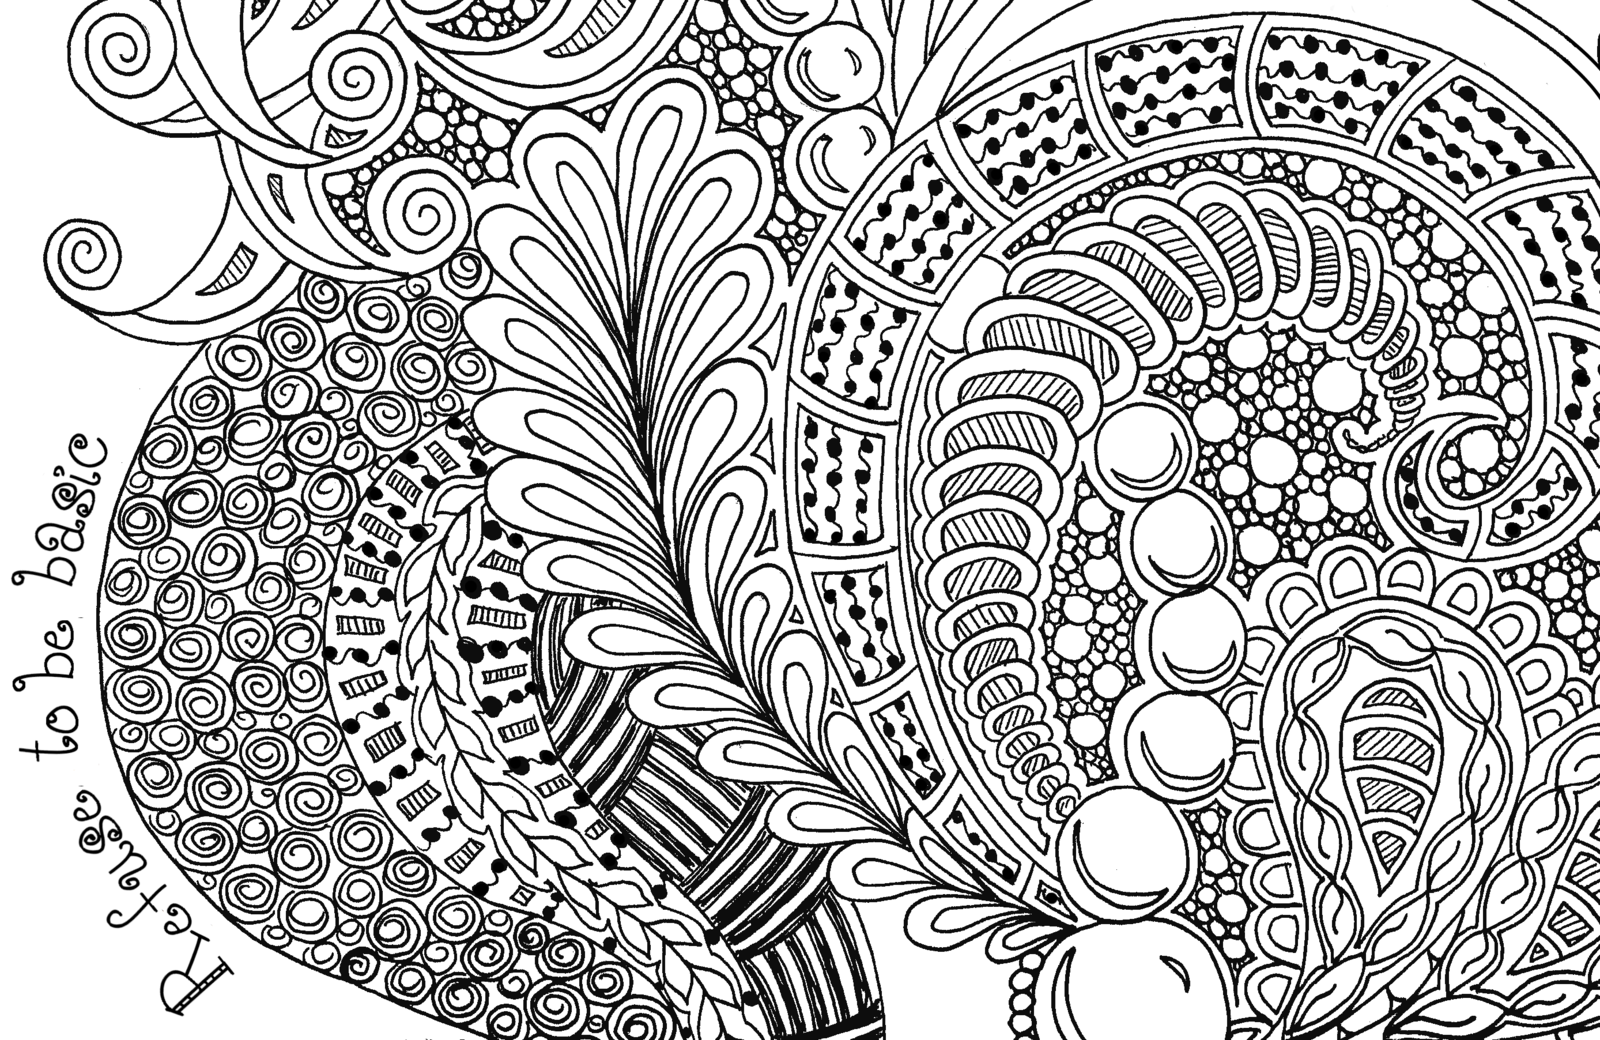 zentangle coloring pages free printable zentangle to print for free zentangle kids coloring pages printable pages coloring zentangle free